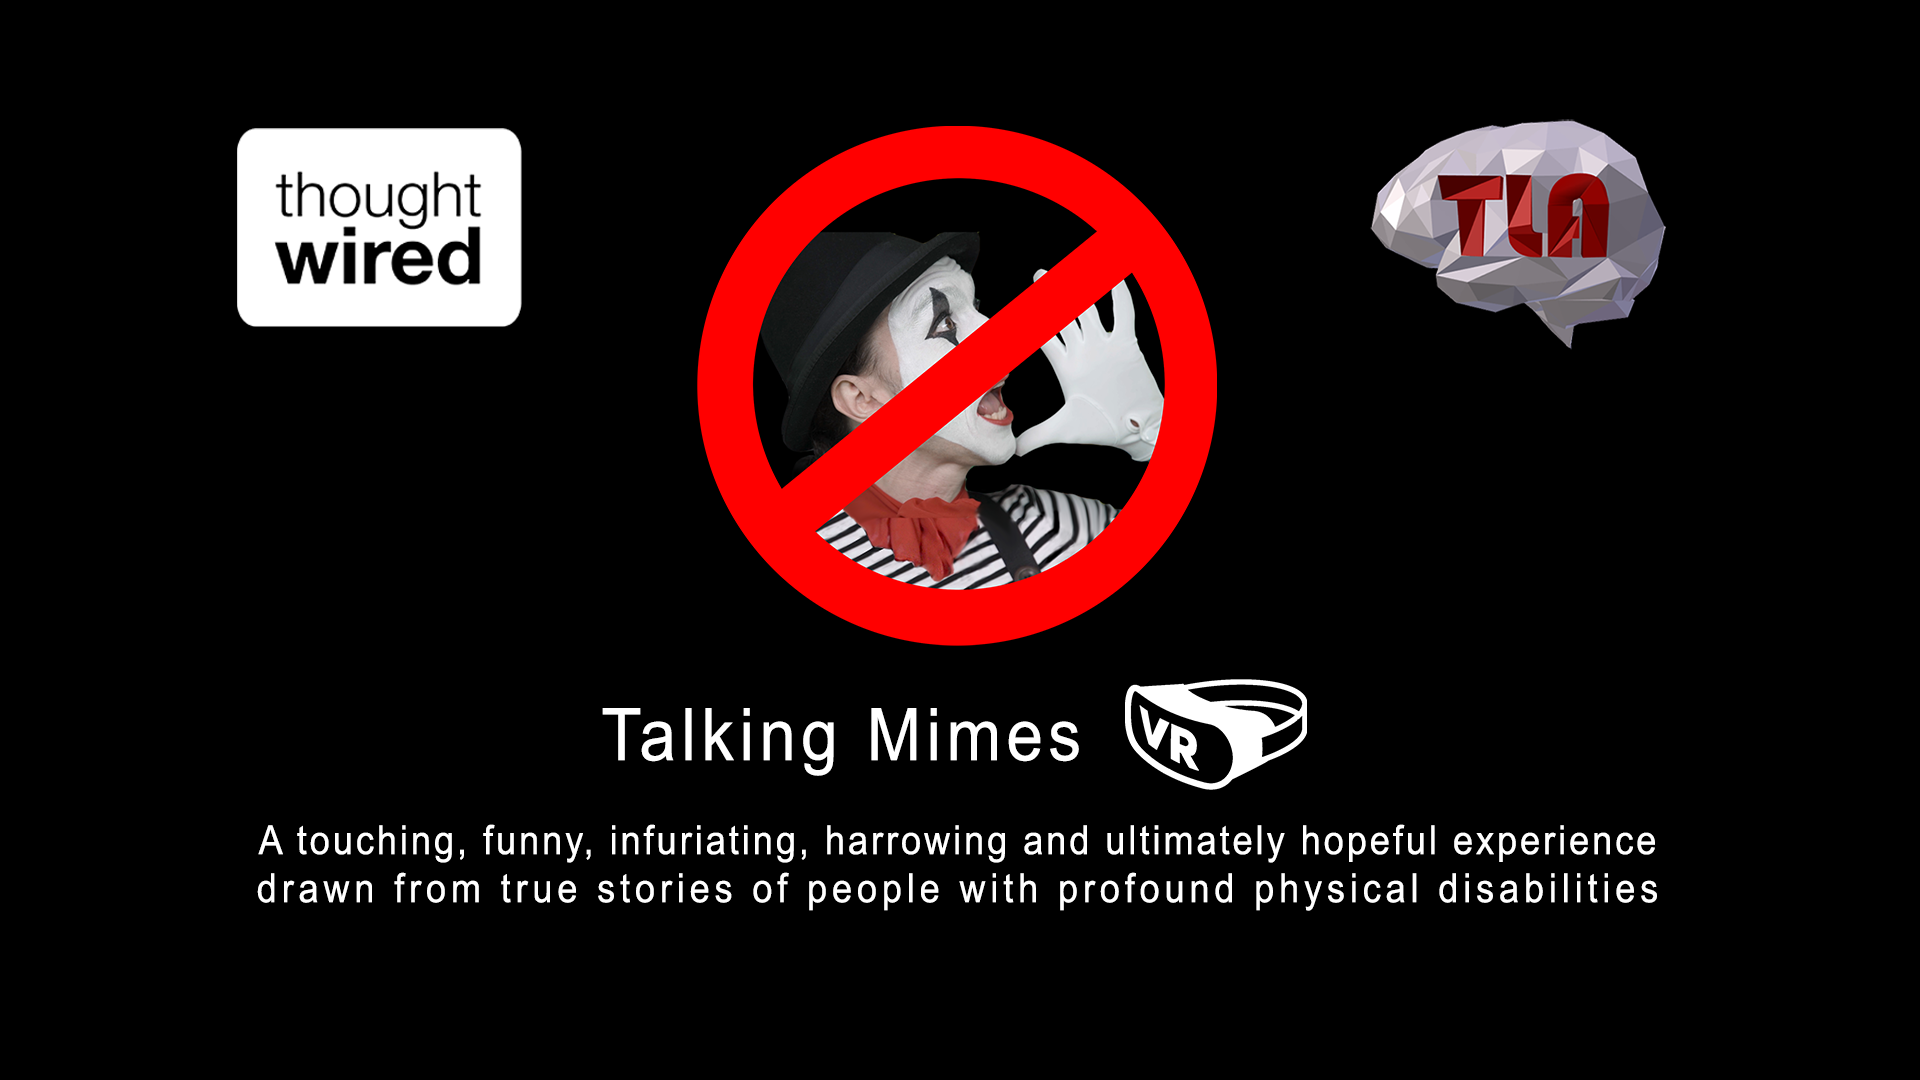 Talking Mimes VR poster with logos and blurb that can be found on https://talkingmimes.com